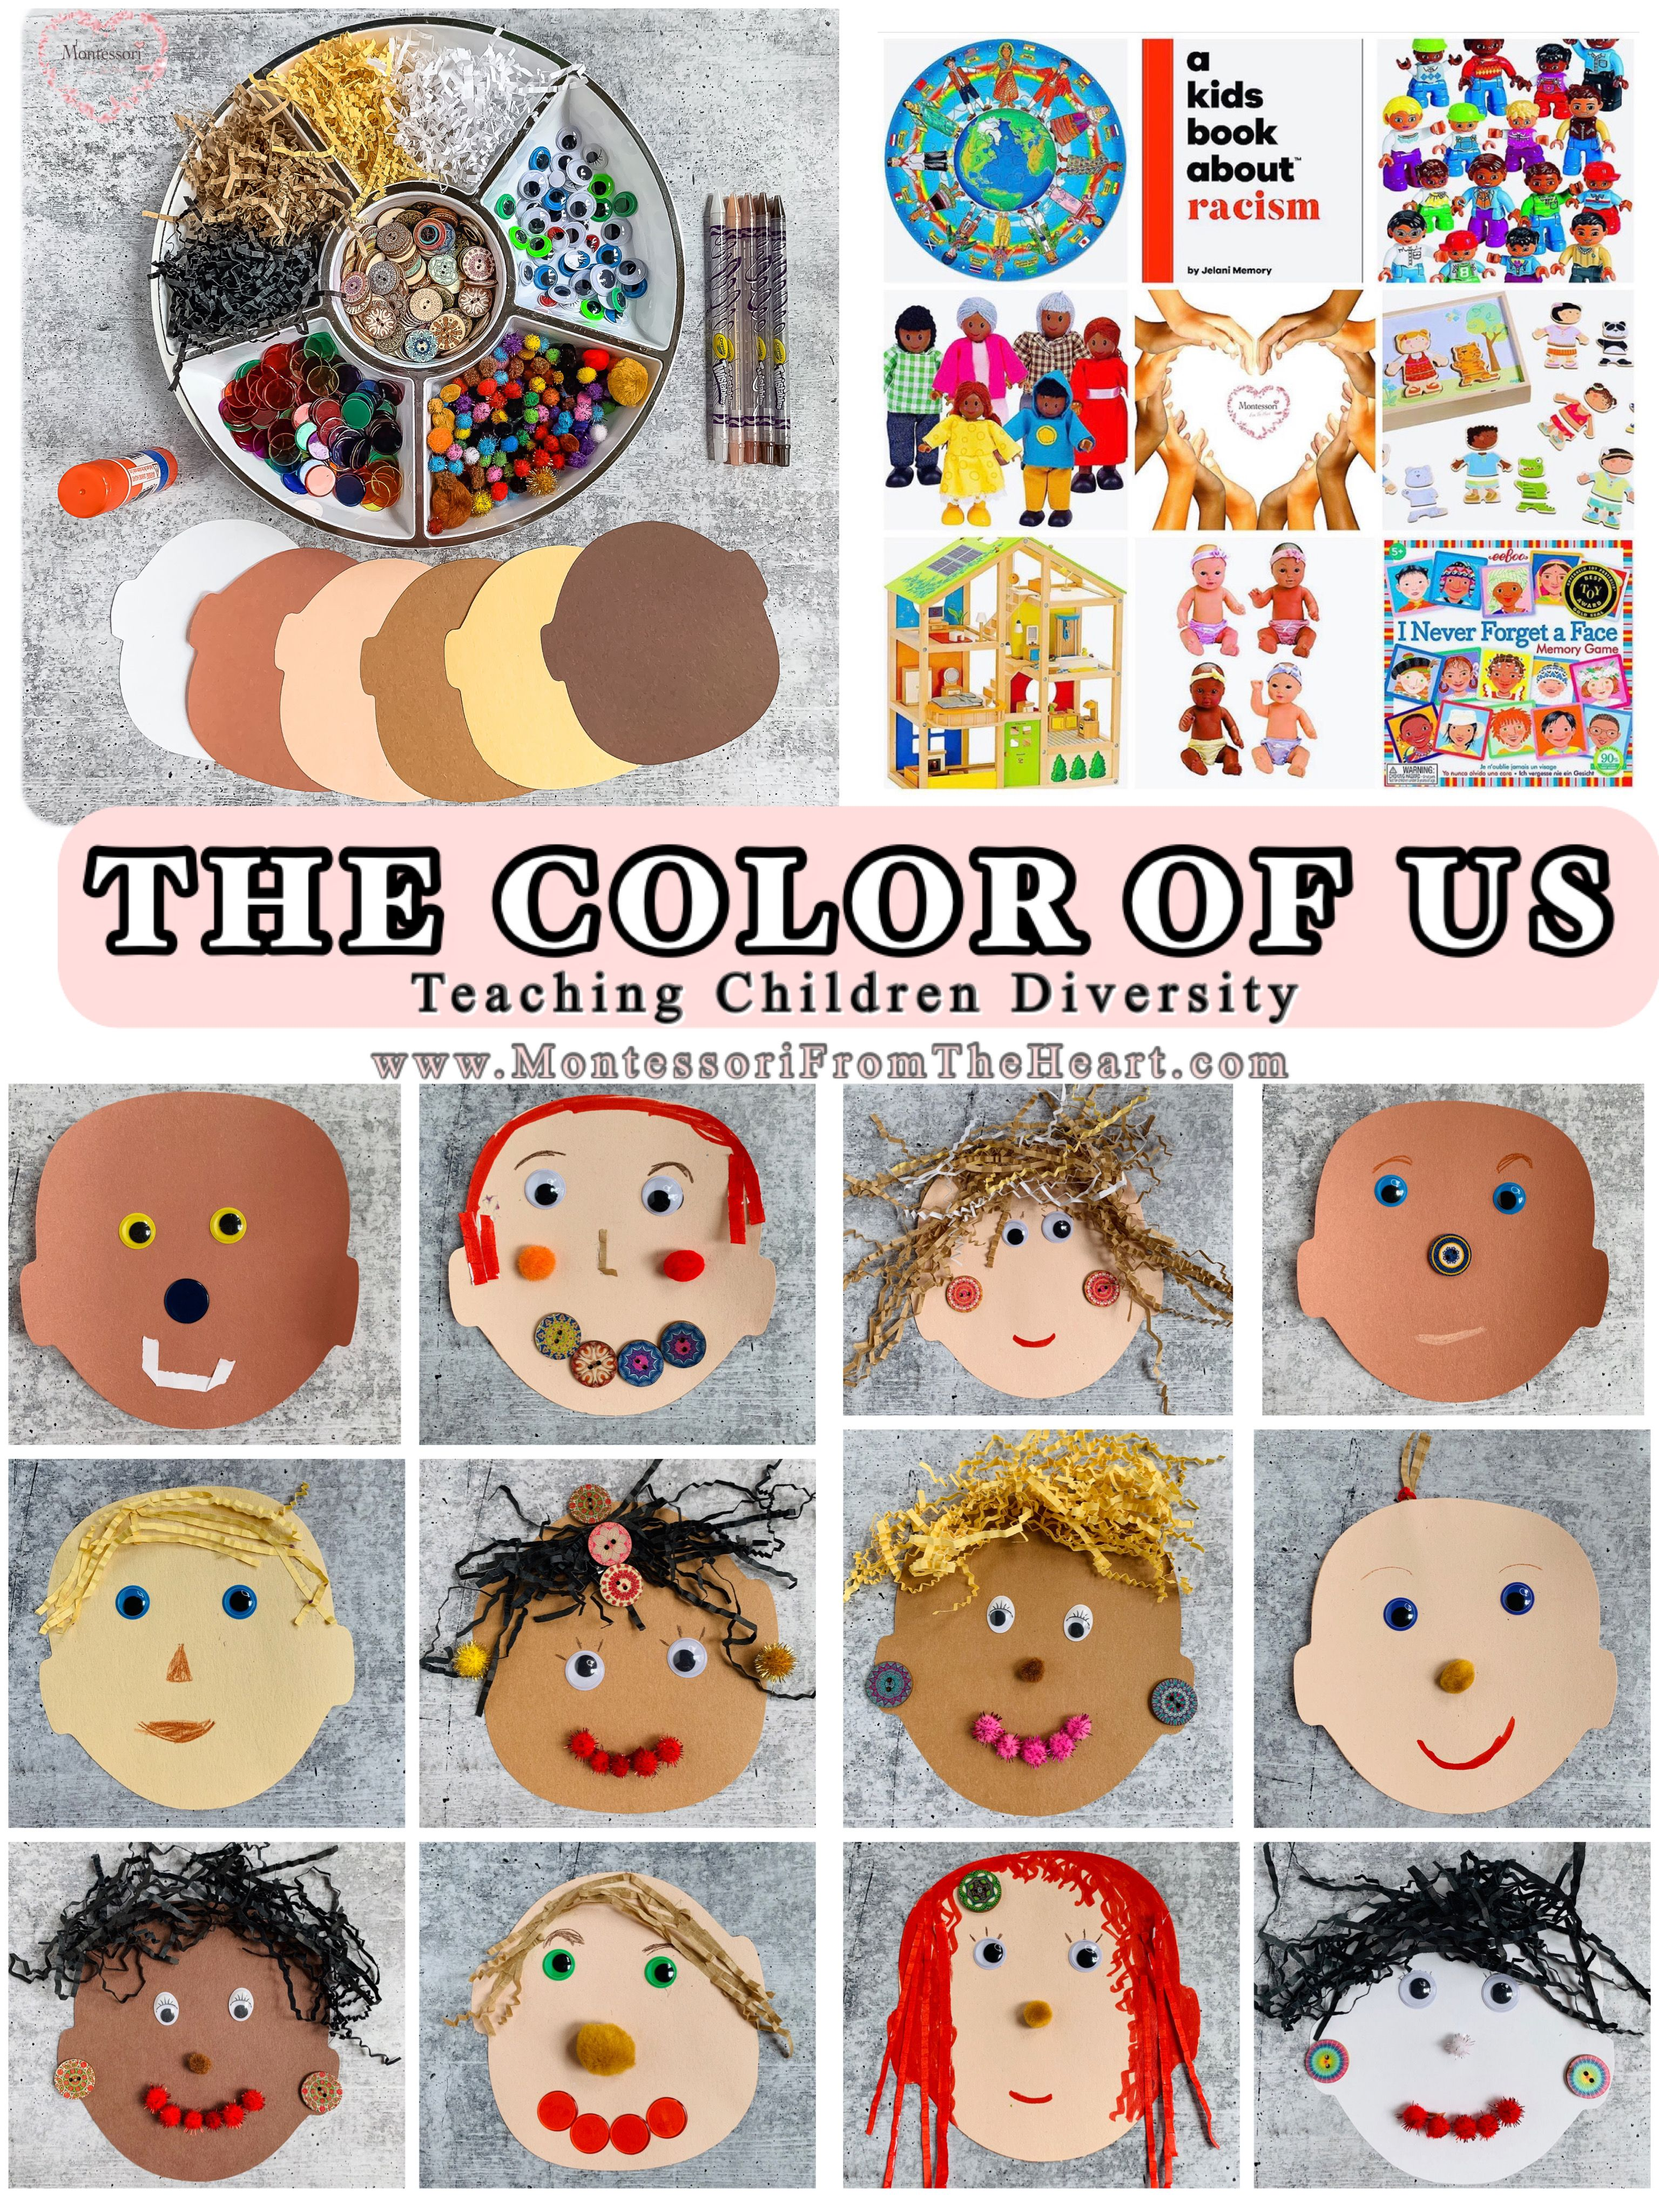 Kids Multicultural Diversity Materials | Montessori From ...